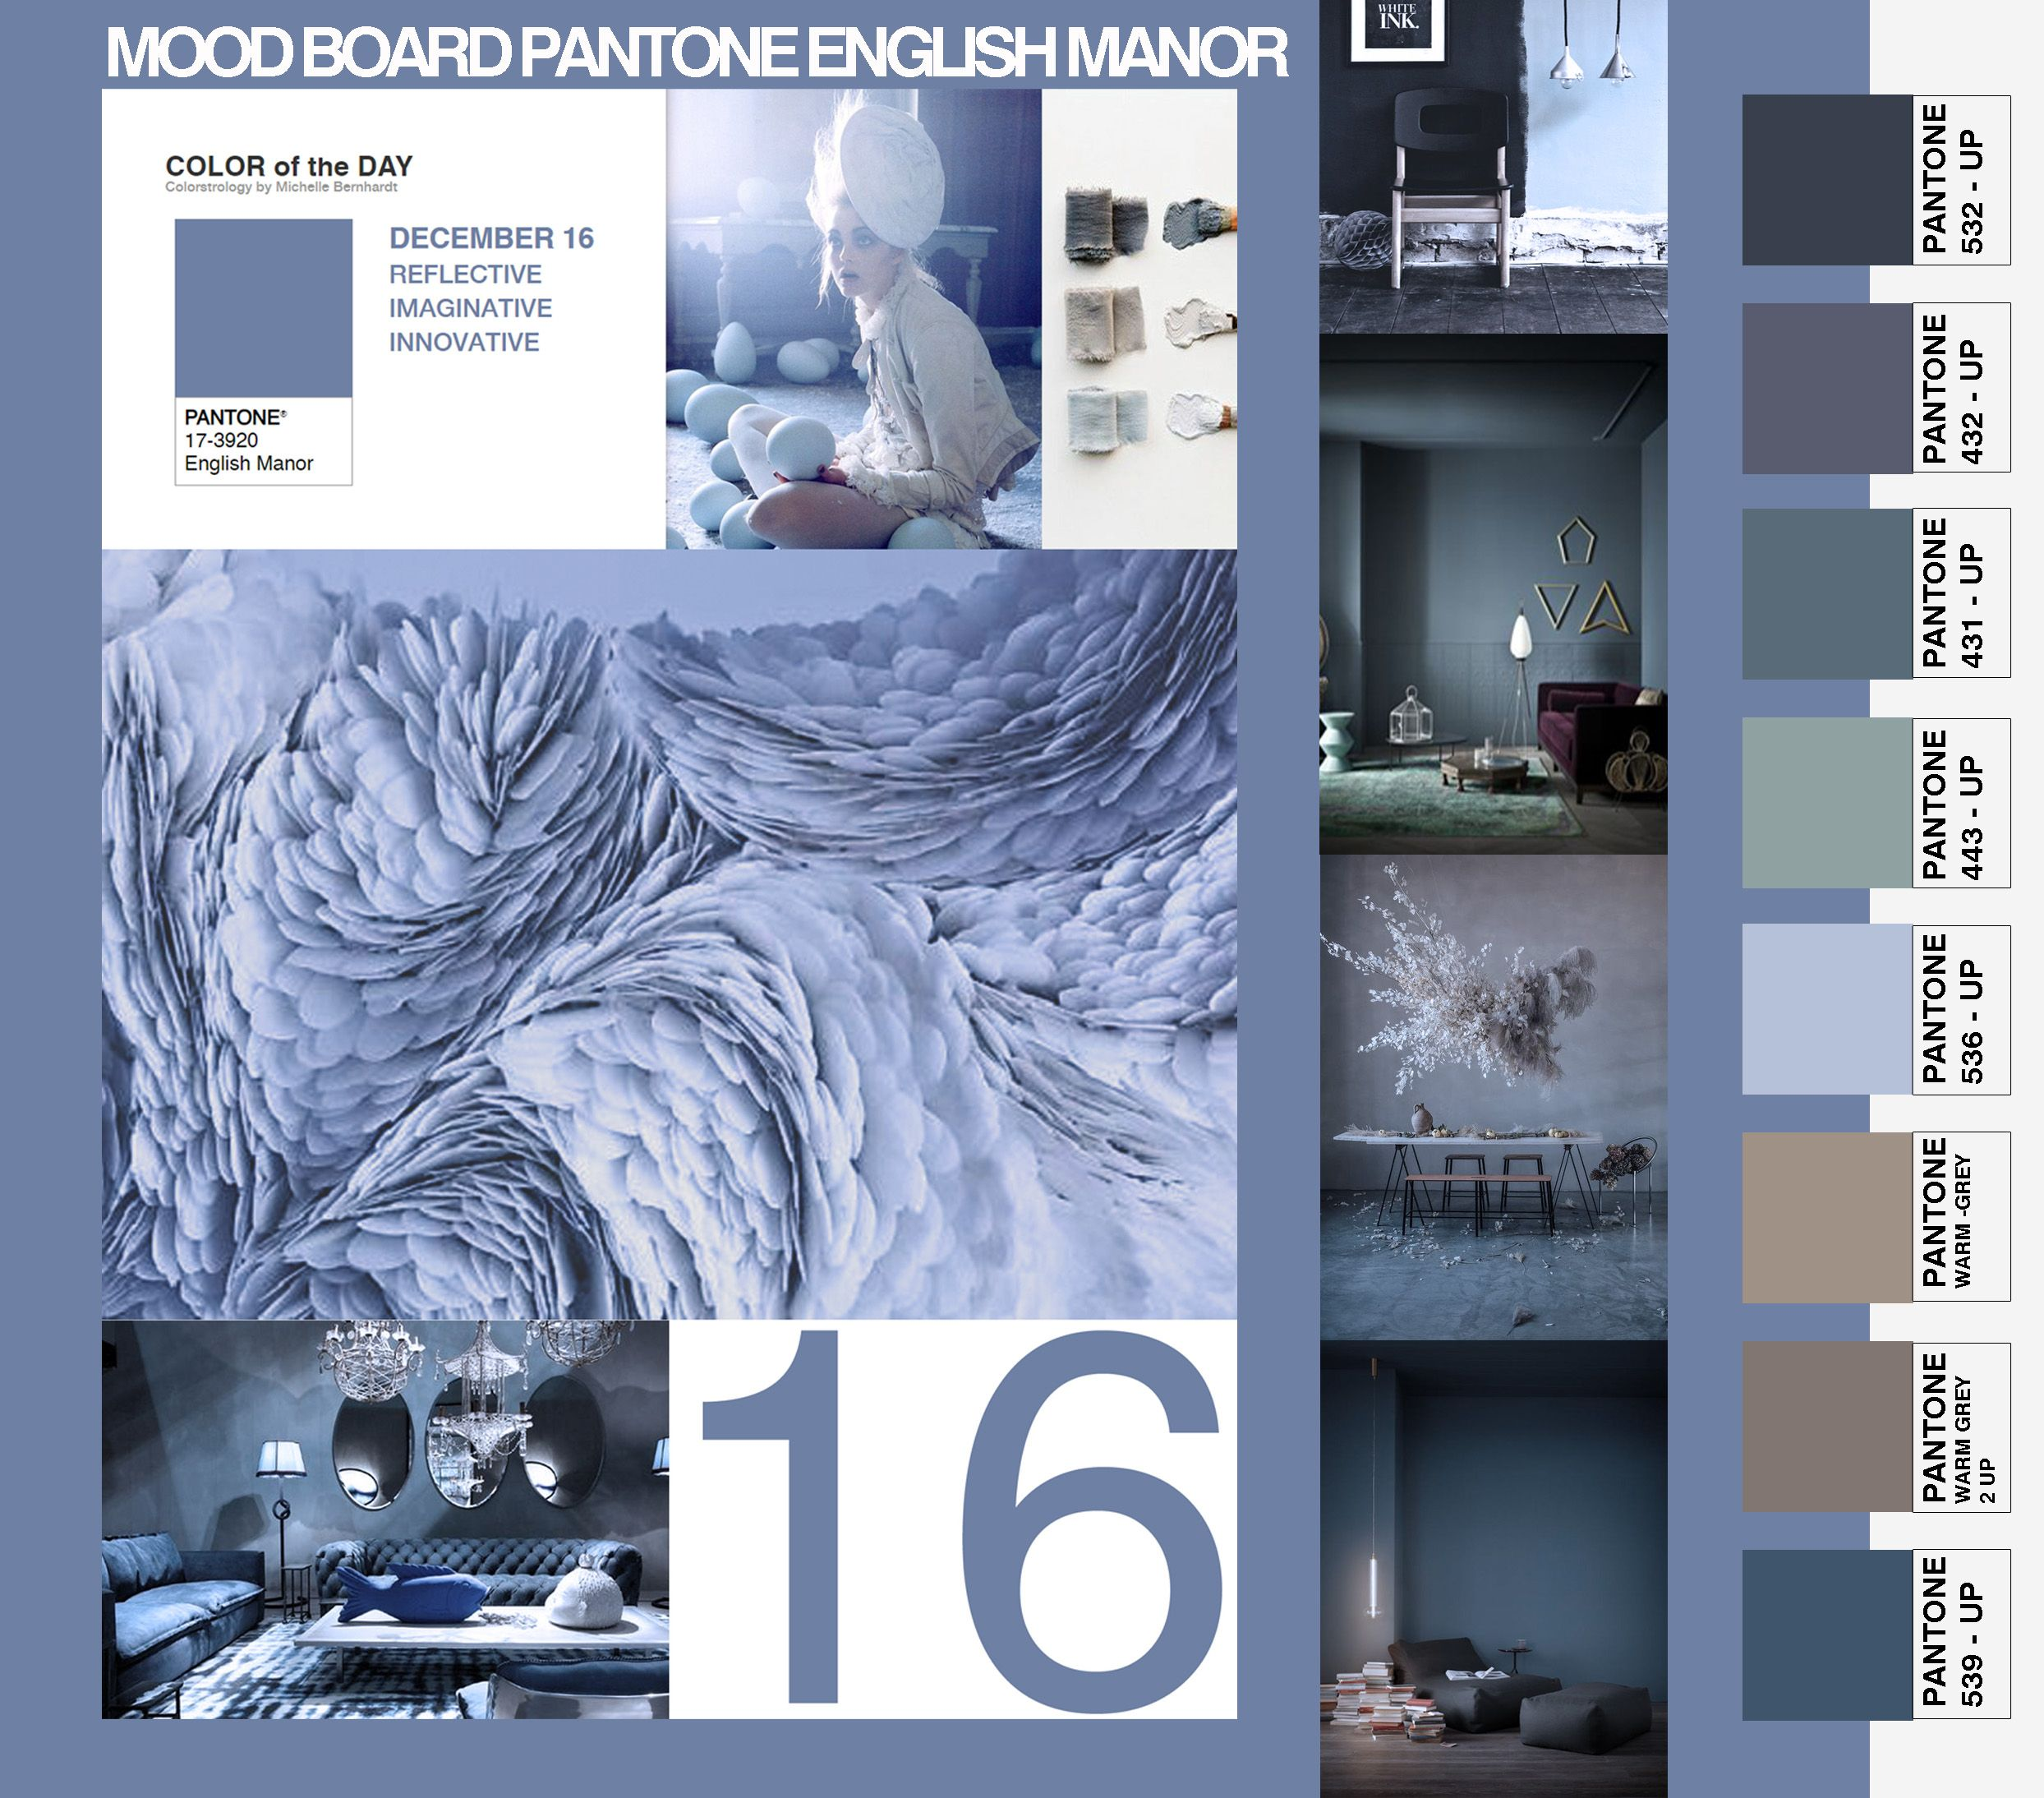 Moodboard Of The Day Color Pantone English Manor